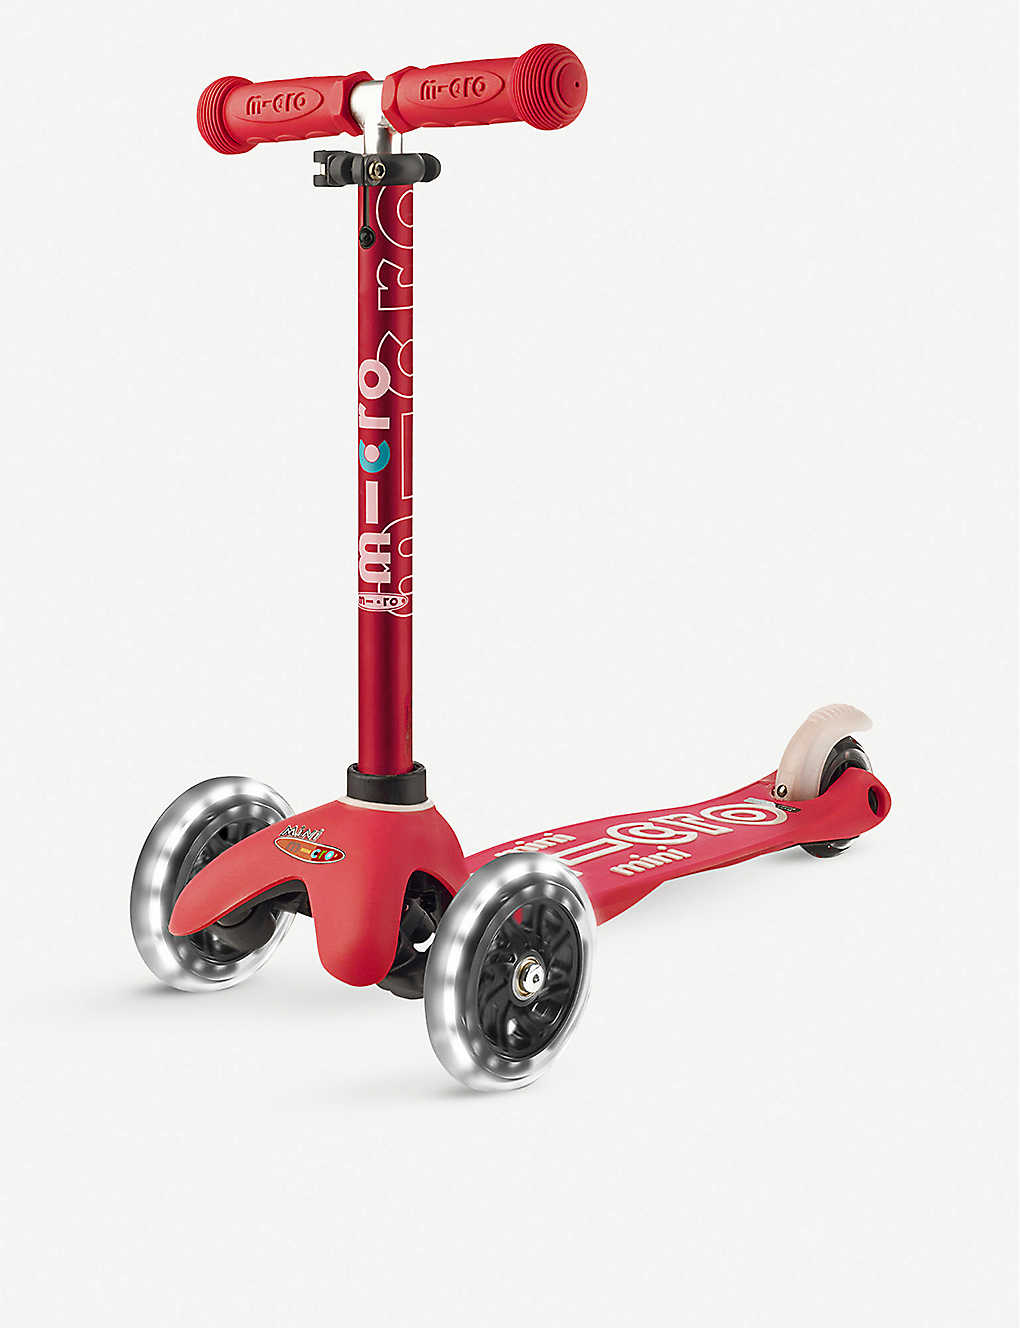 MICRO SCOOTER: Mini Deluxe LED scooter